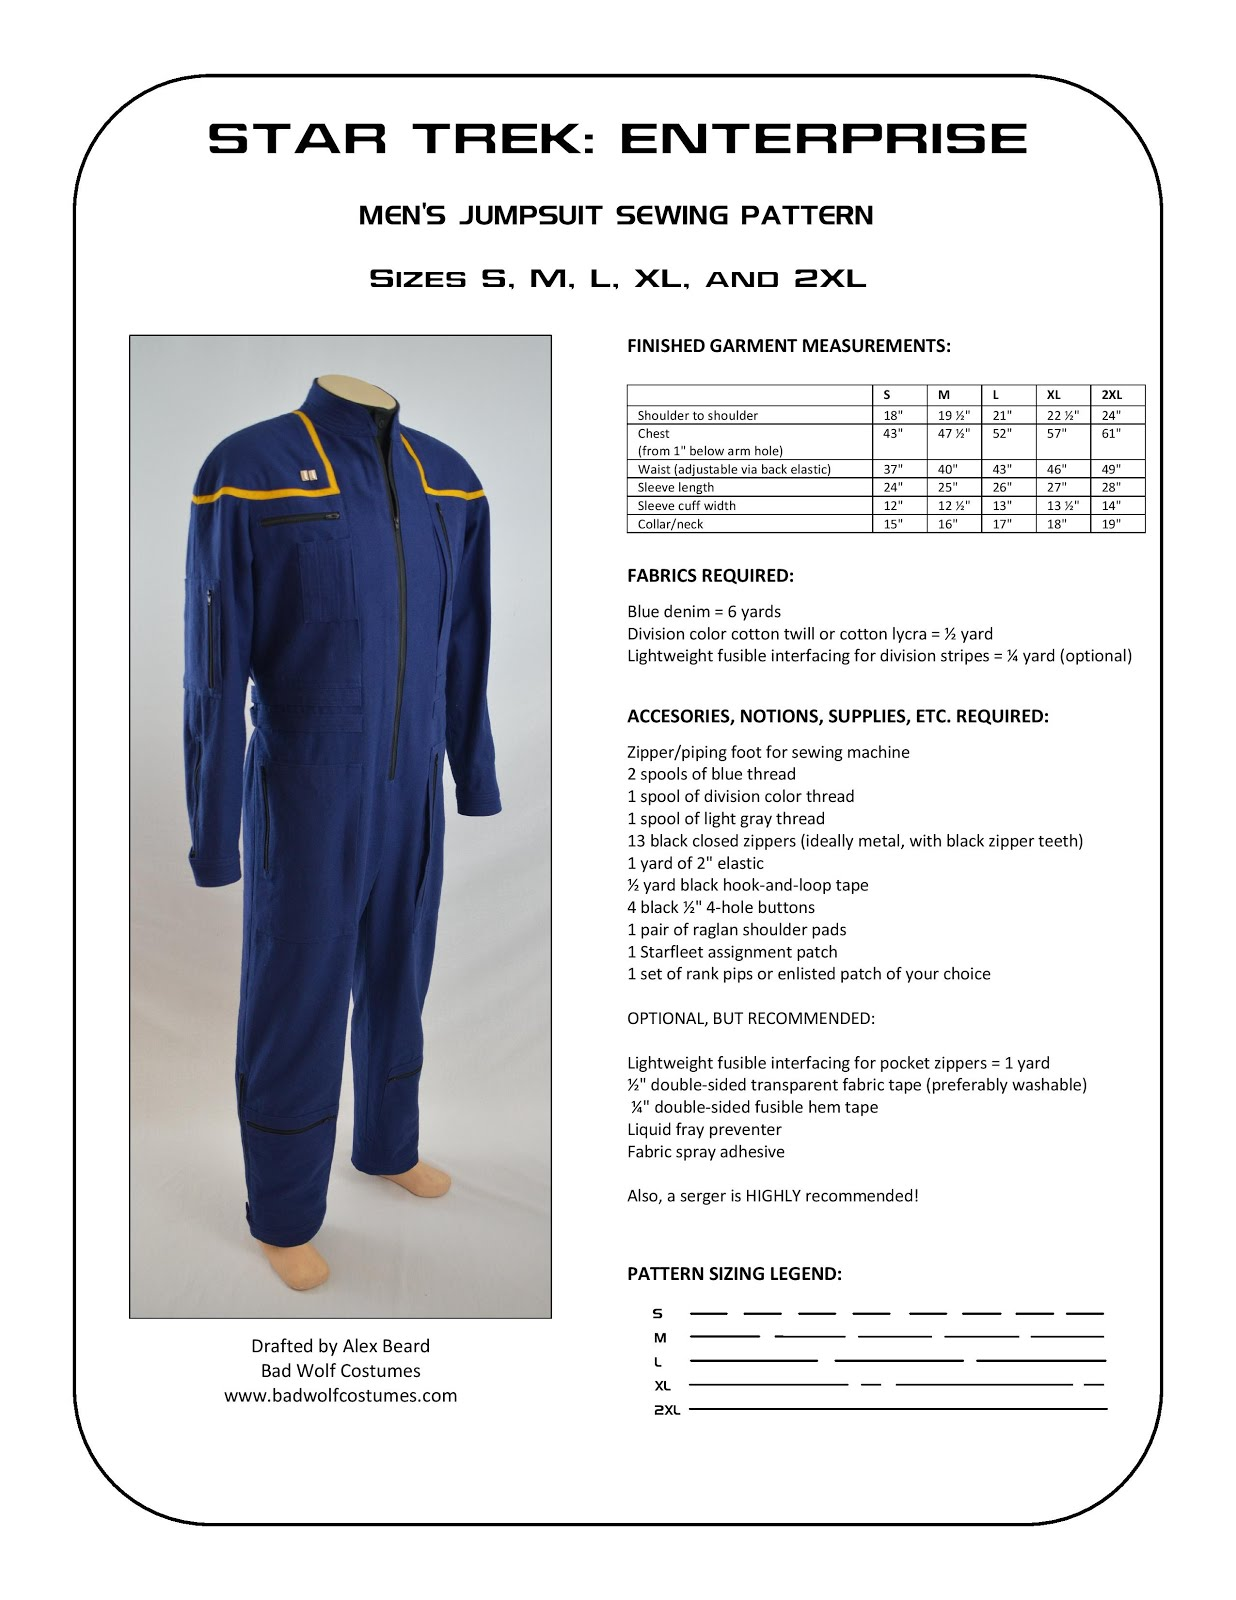 Star Trek: Enterprise Men's Jumpsuit Sewing Pattern